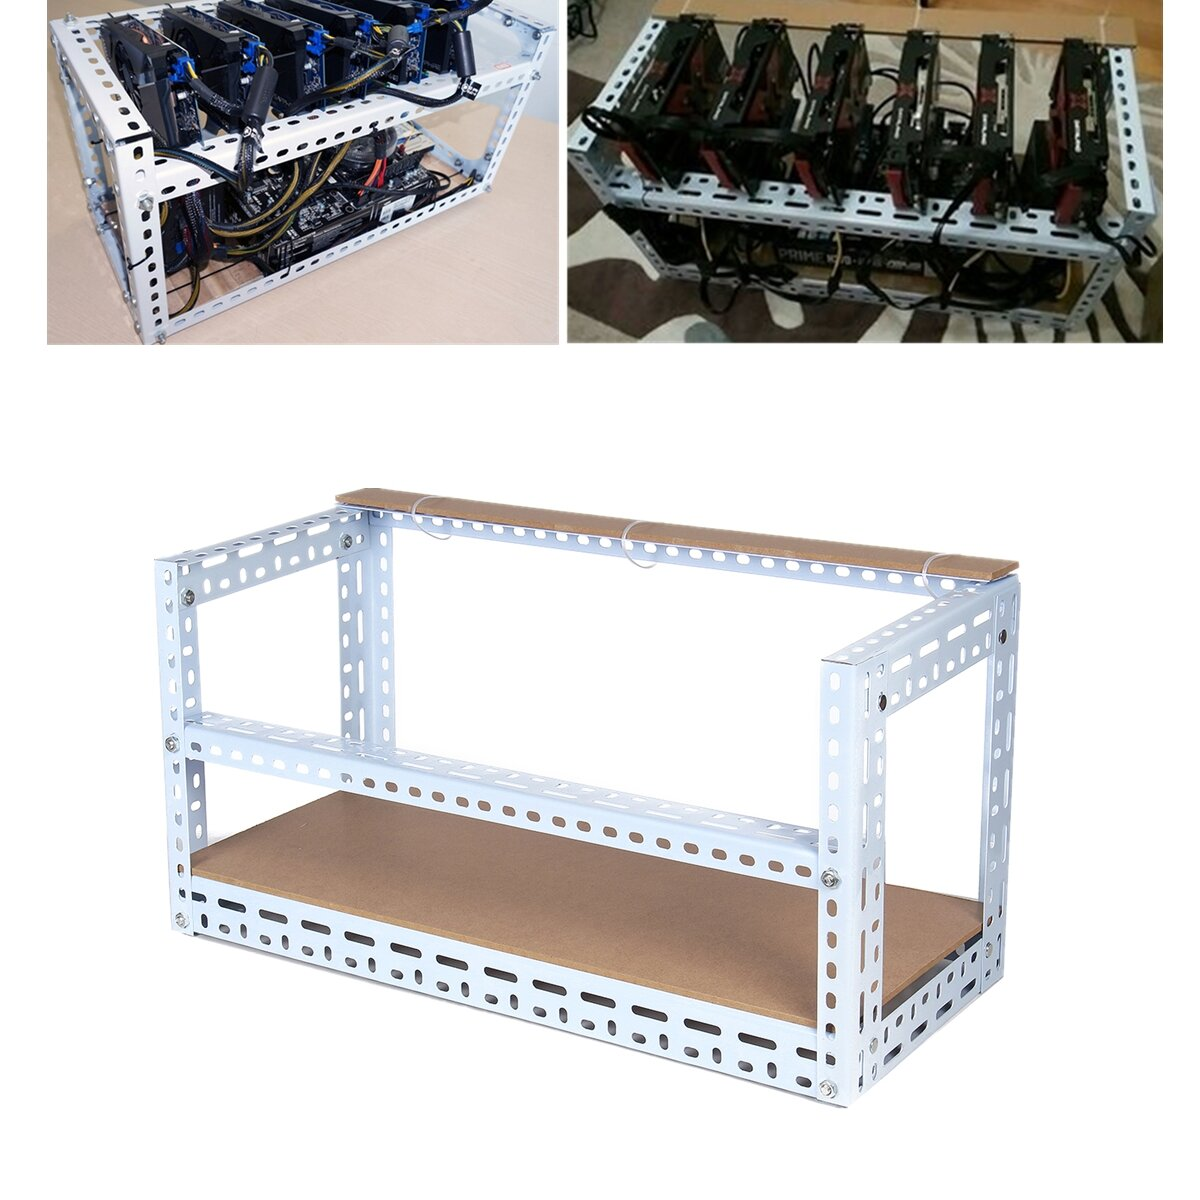 bitcoin mining rig for sale